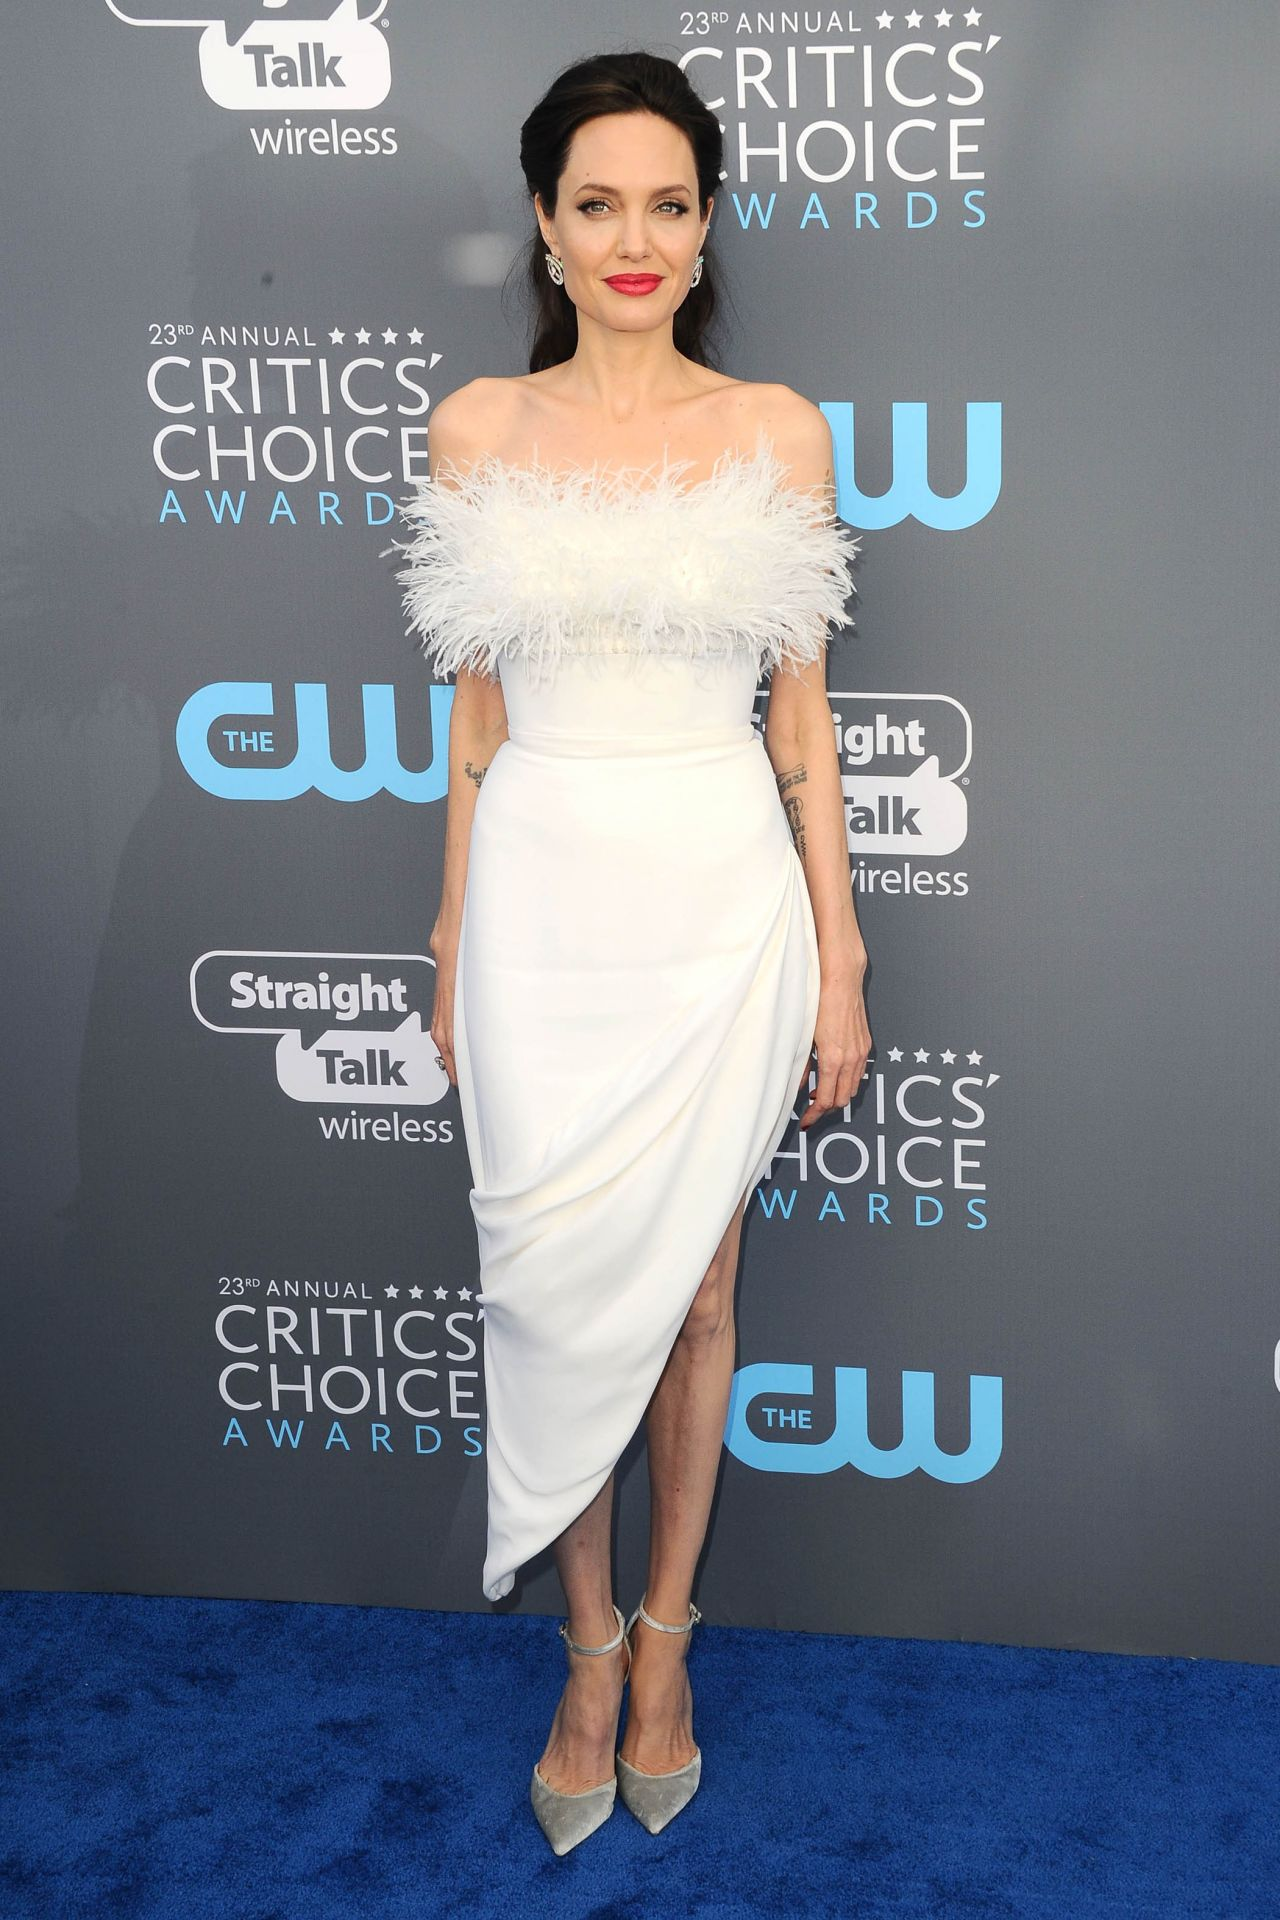 http://celebmafia.com/wp-content/uploads/2018/01/angelina-jolie-2018-critics-choice-awards-11.jpg